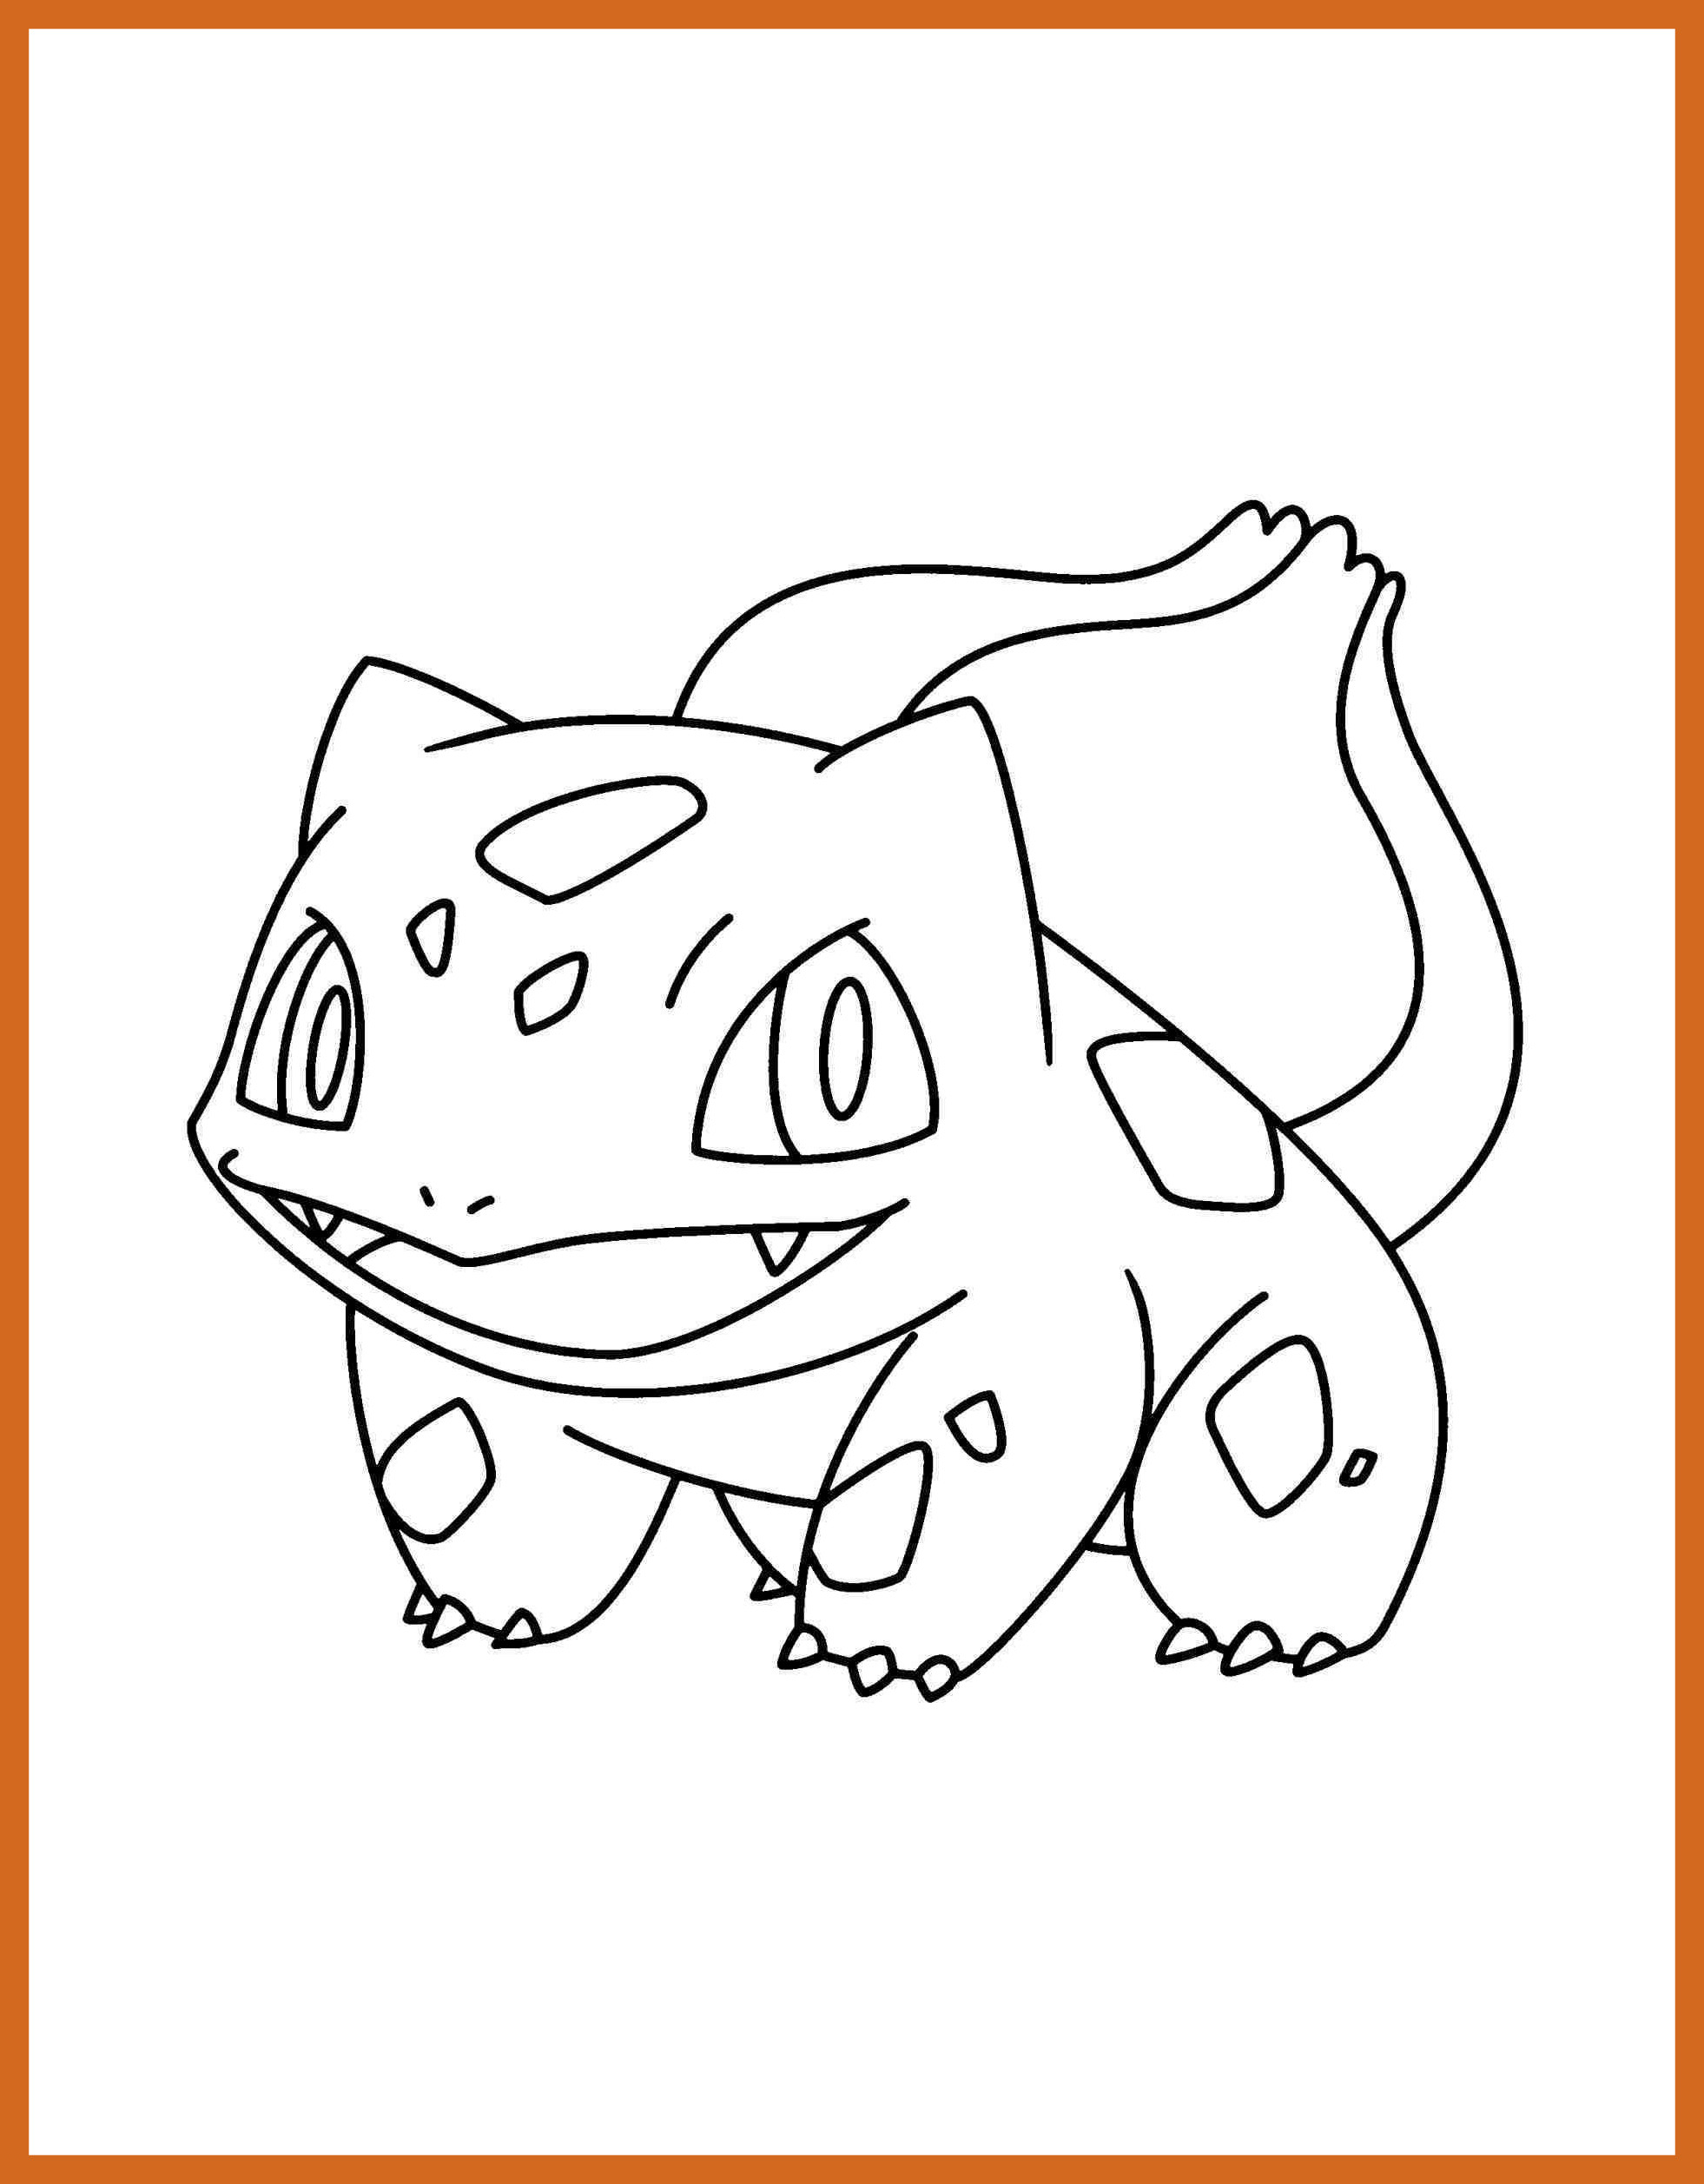 Marill Coloring Pages At Getdrawings Com Free For Personal Use